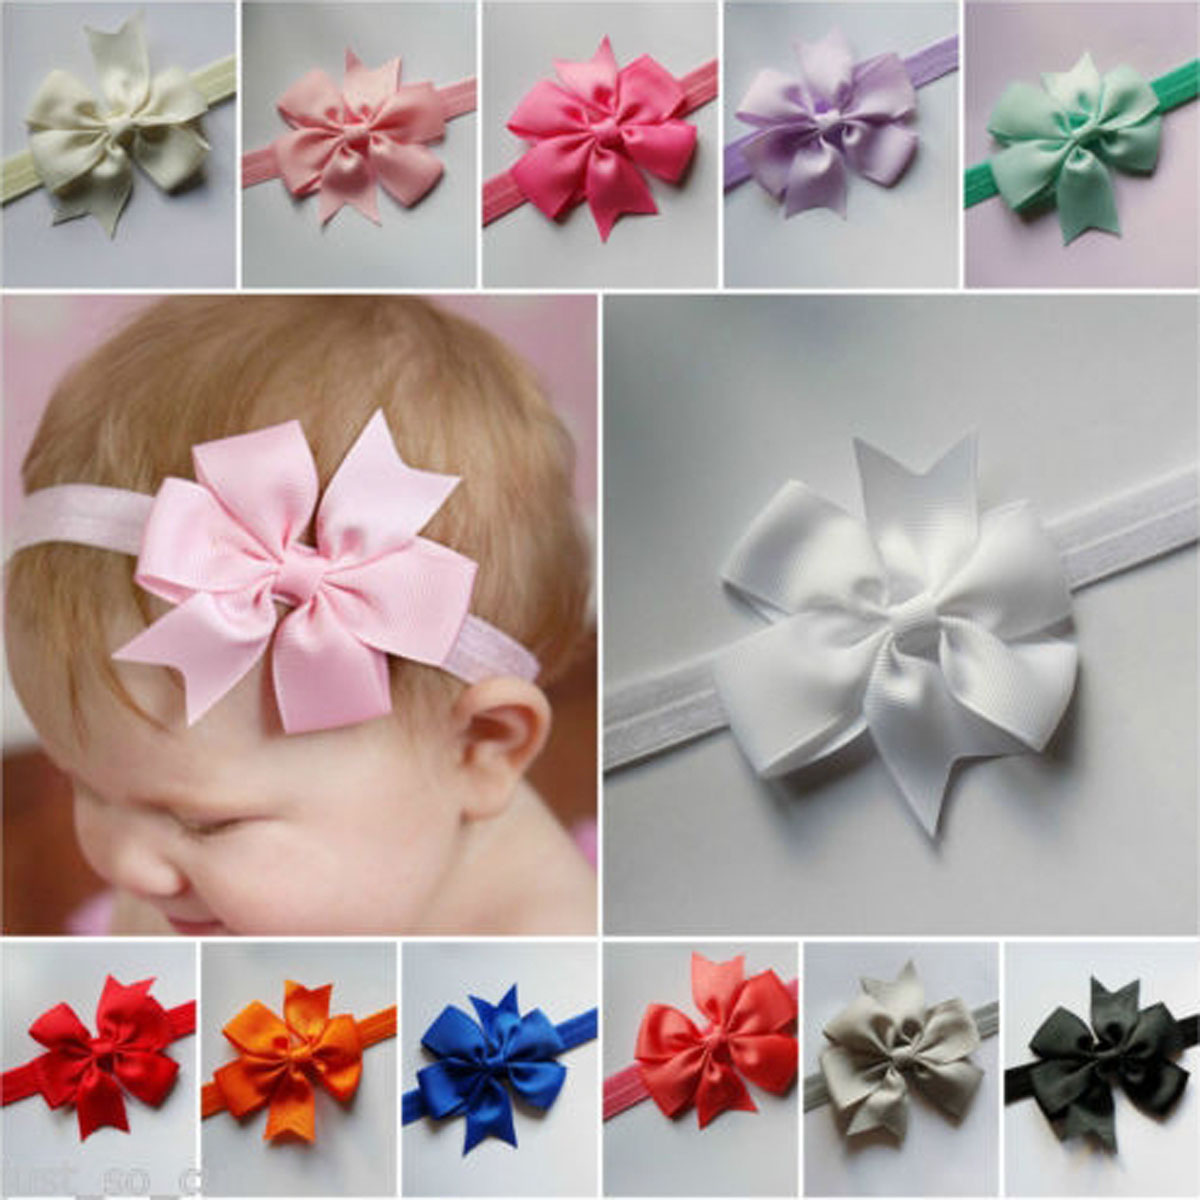 Cute Newborn Baby Kids Headbrand Infant Toddler Bow Hair Band Girls Accessories